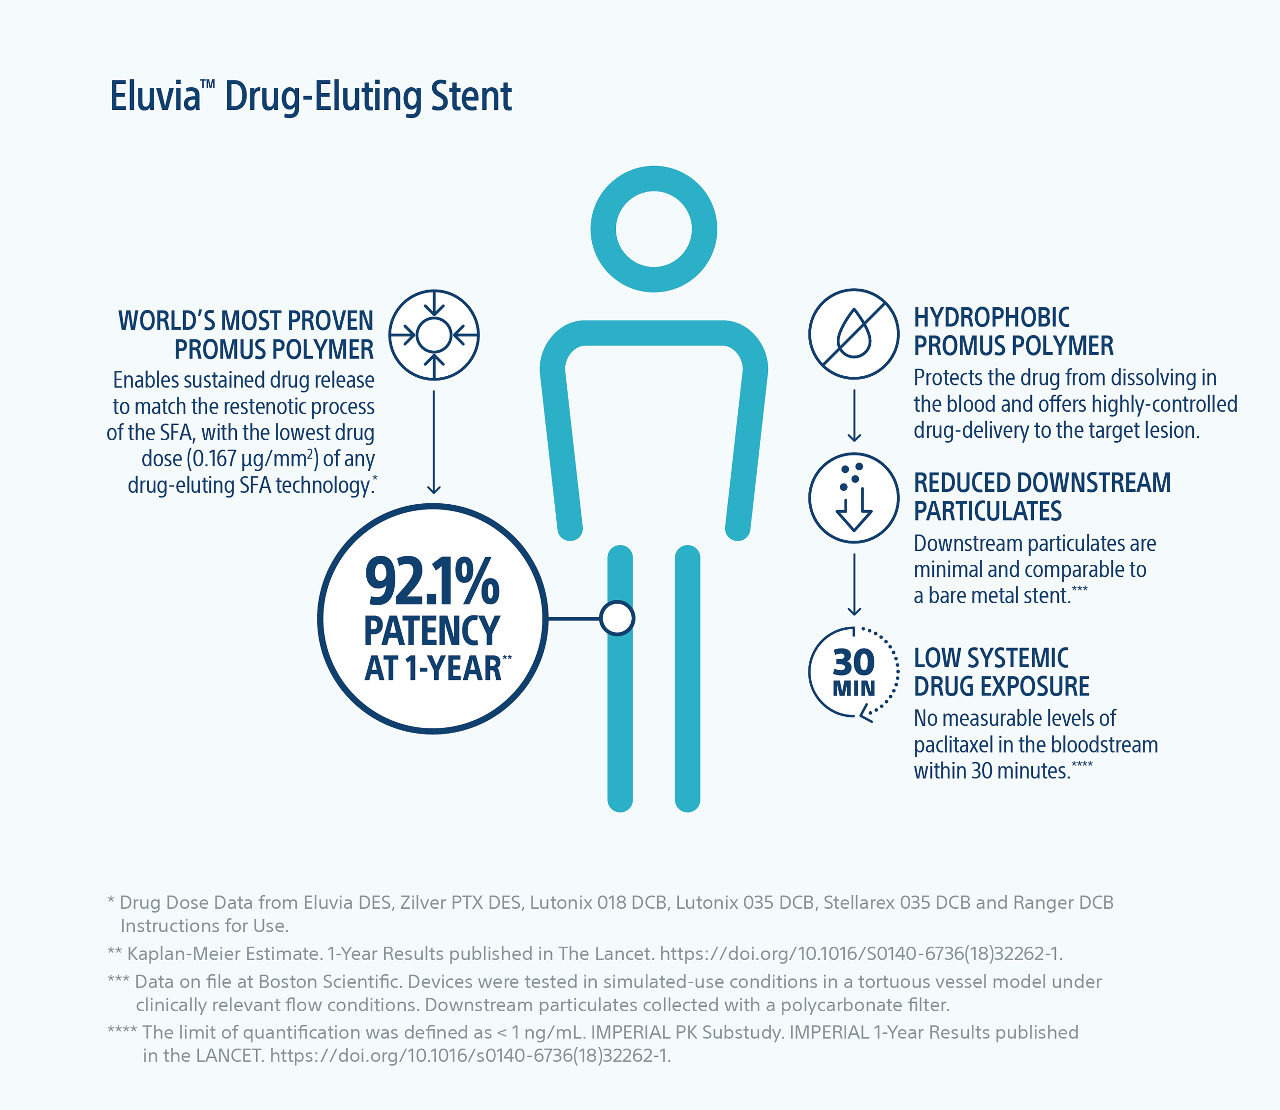 Infographic of Eluvia drug eluting stent illustrating 92.1% patency at one year.